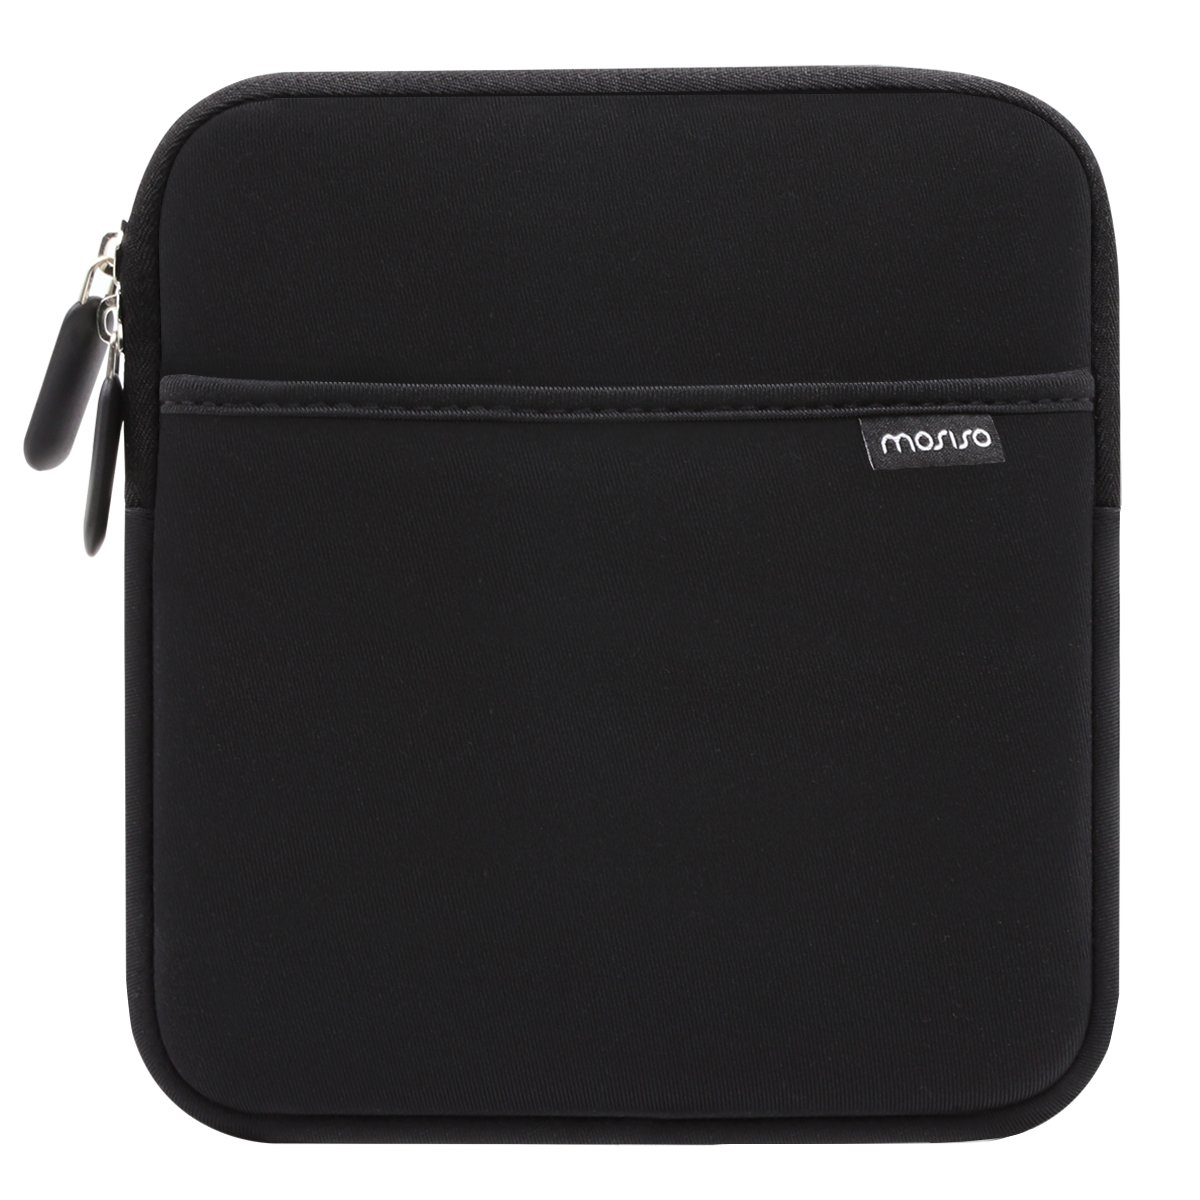 MOSISO External USB CD DVD Writer Blu-Ray & Hard Drive Sleeve Bag, Compatible MD564ZM/A USB 2.0 SuperDrive, Magic Trackpad, Samsung SE-218CB SE-218GN SE-208GB SE-208DB, LG GP65NB60, Dell DW316, Black by MOSISO (Image #1)